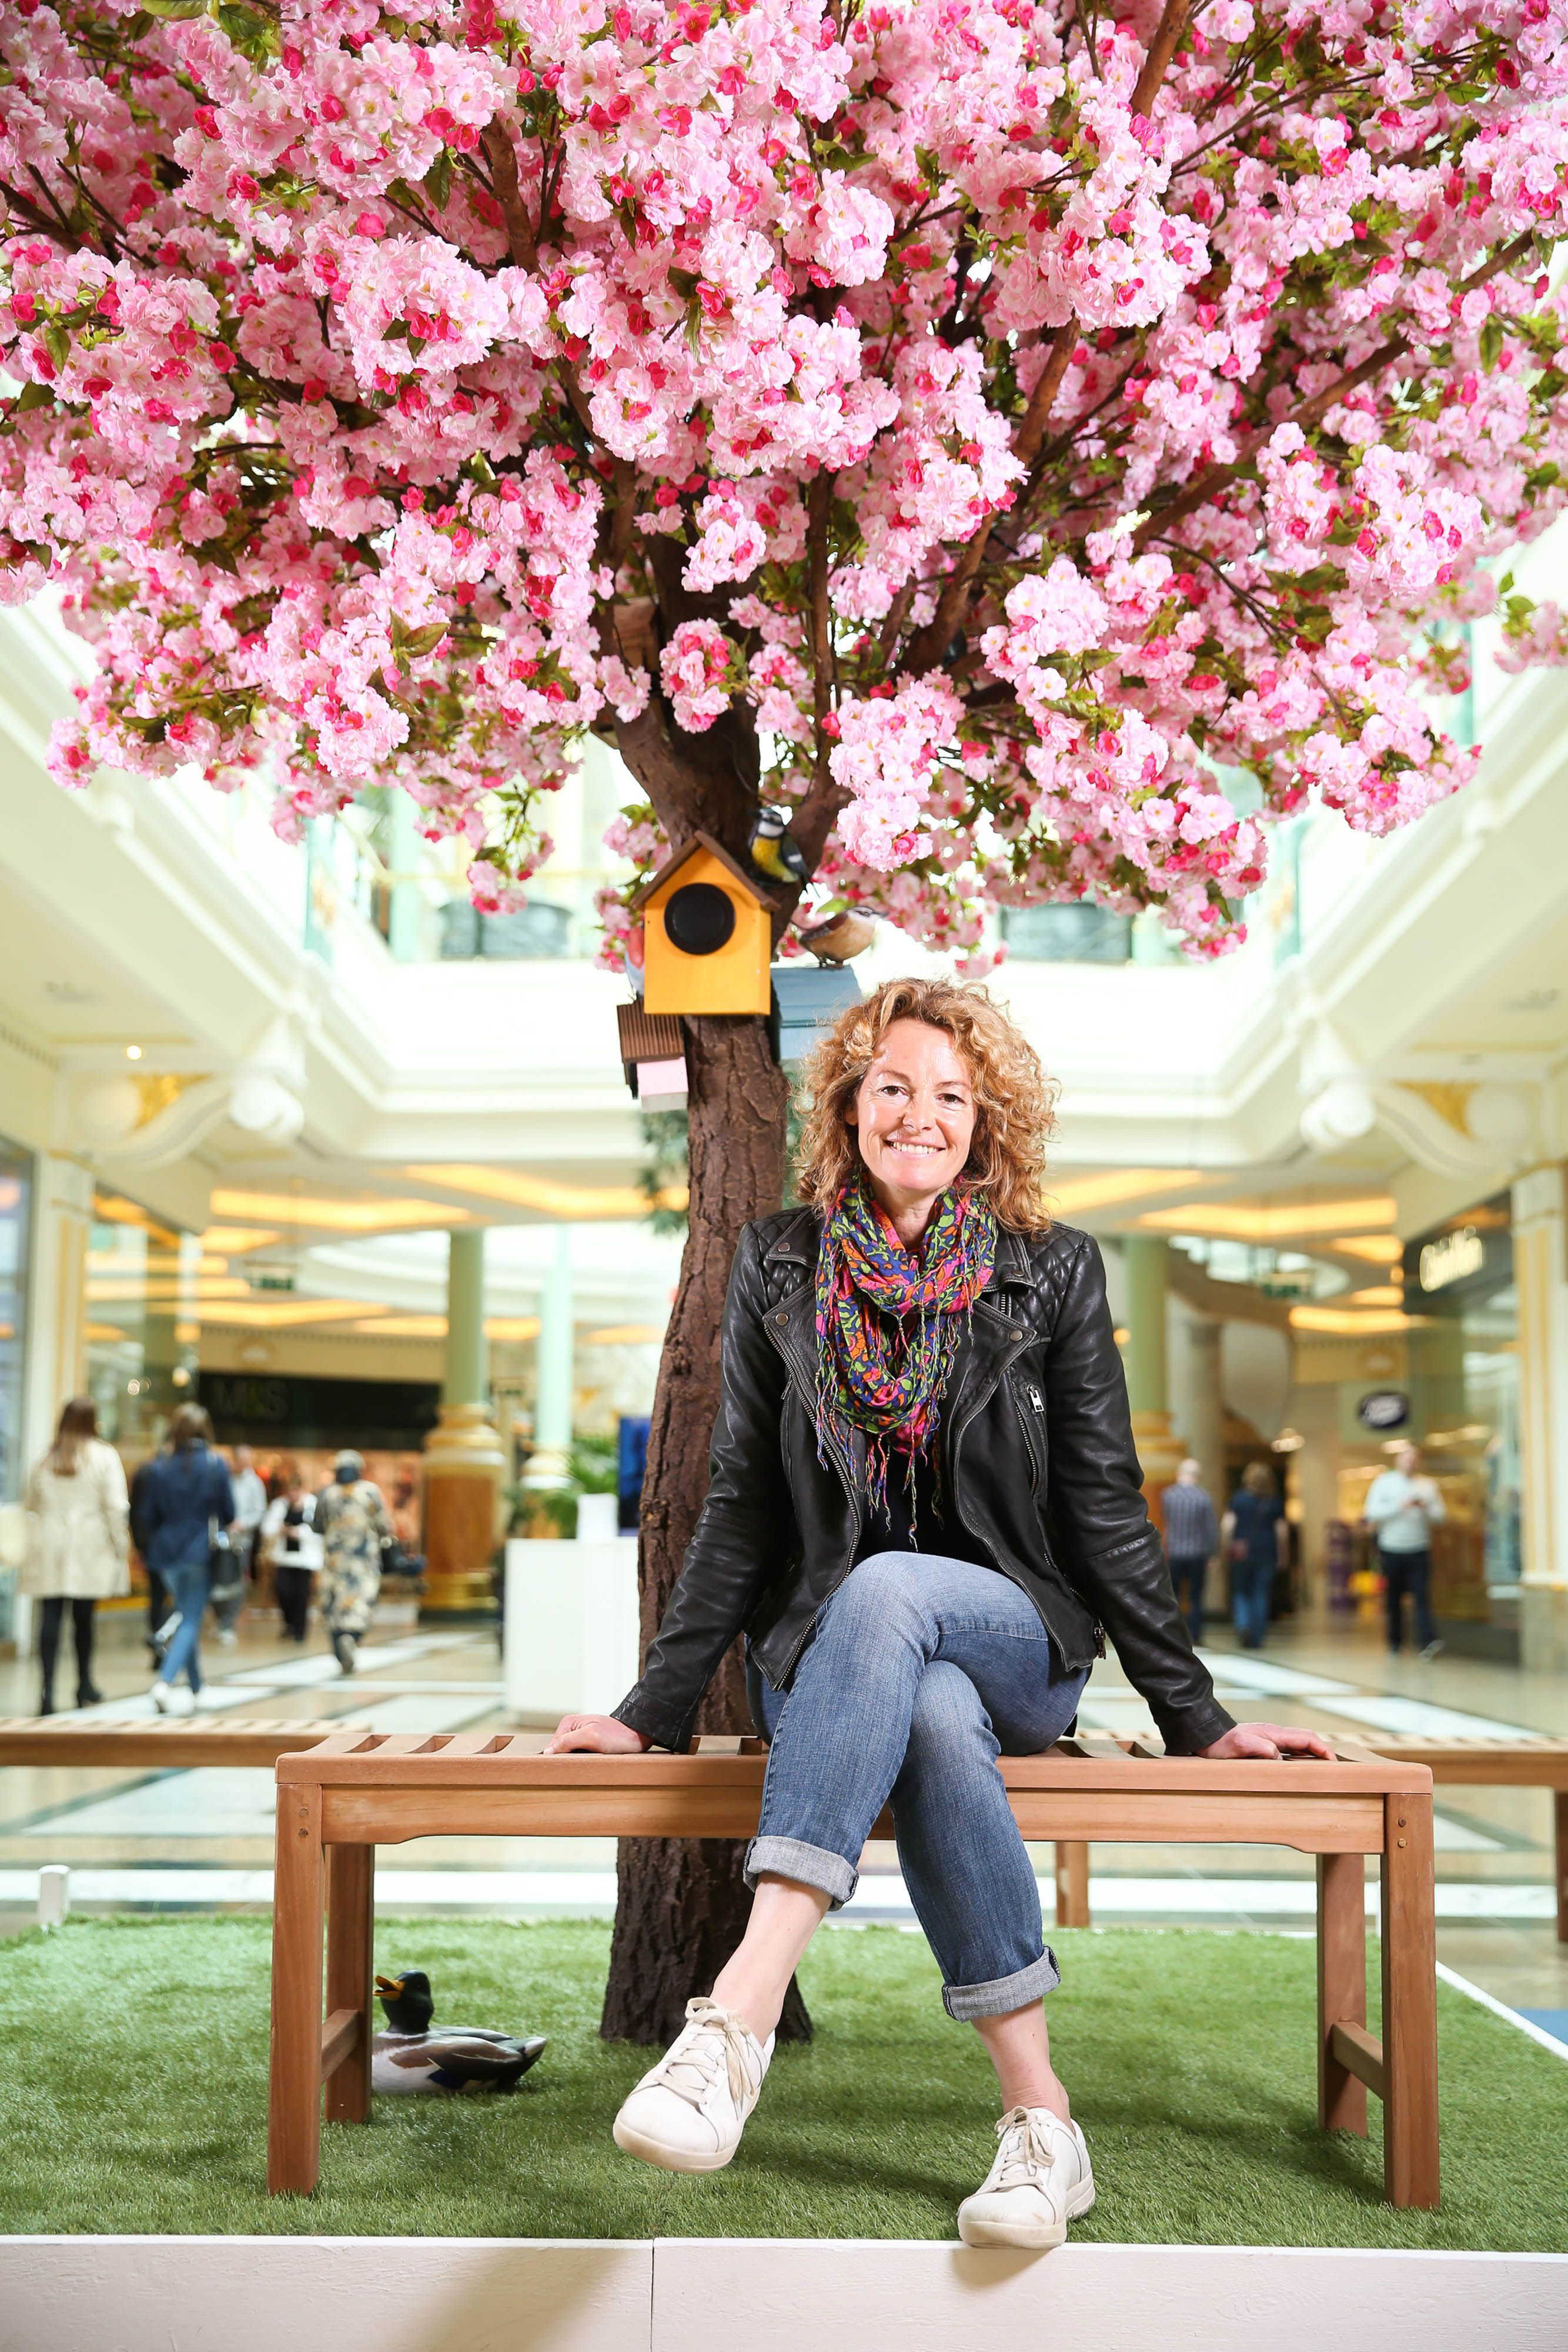 Kate Humble launches 'The Sounds of Spring' to reconnect Brits with the sound of nature